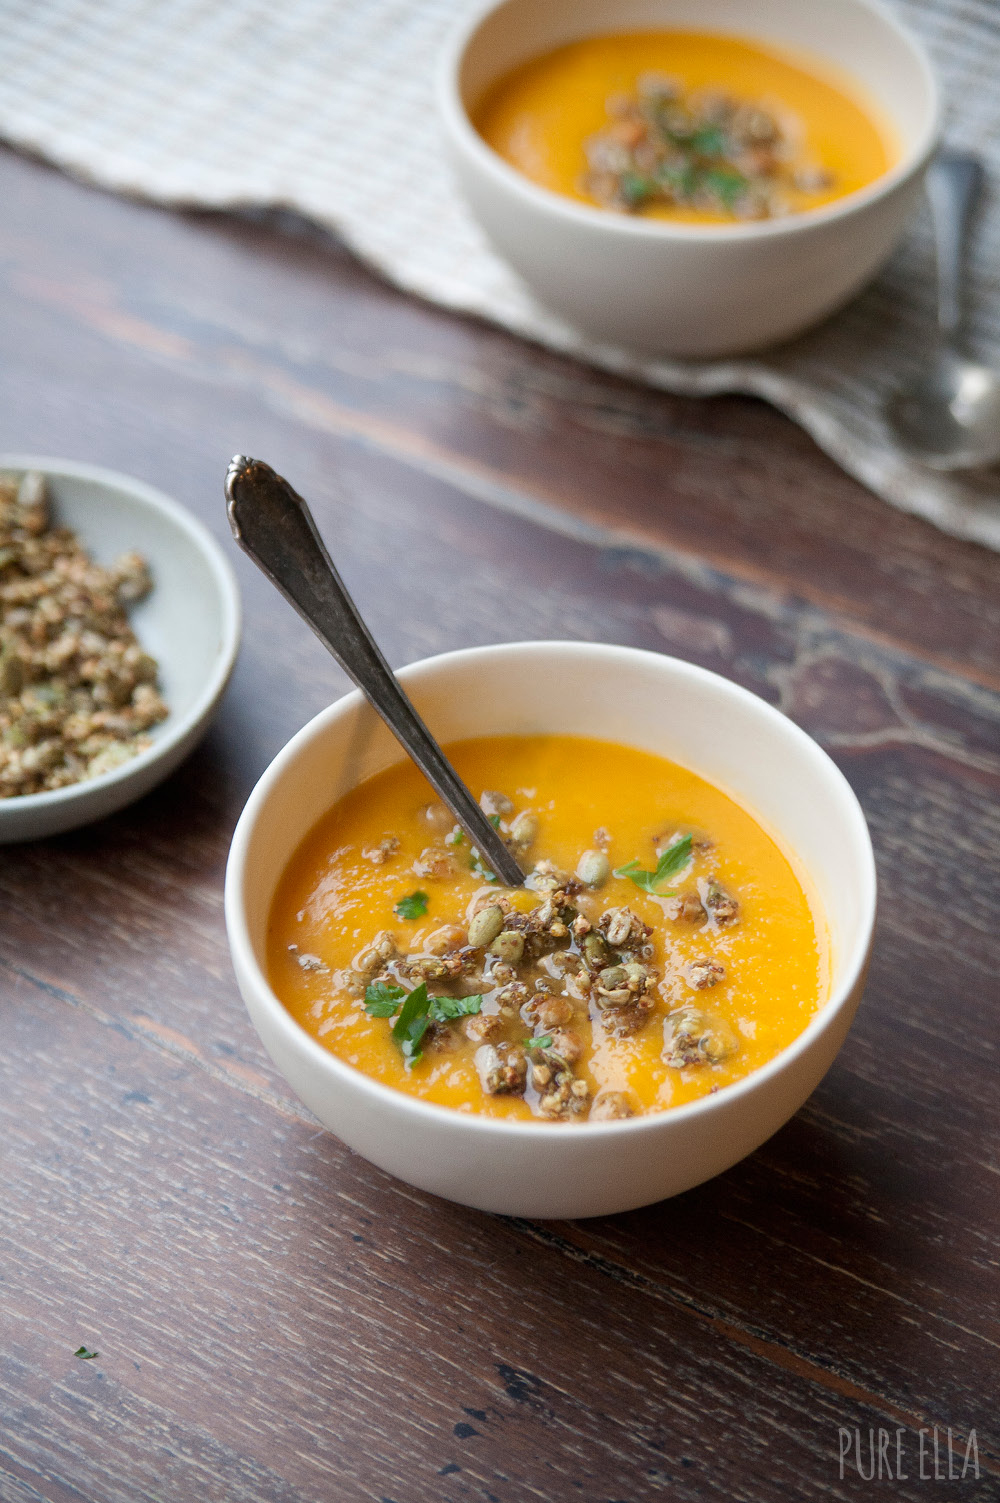 Pure-Ella-Butternut-Squash-Apple-Puree-Soup4